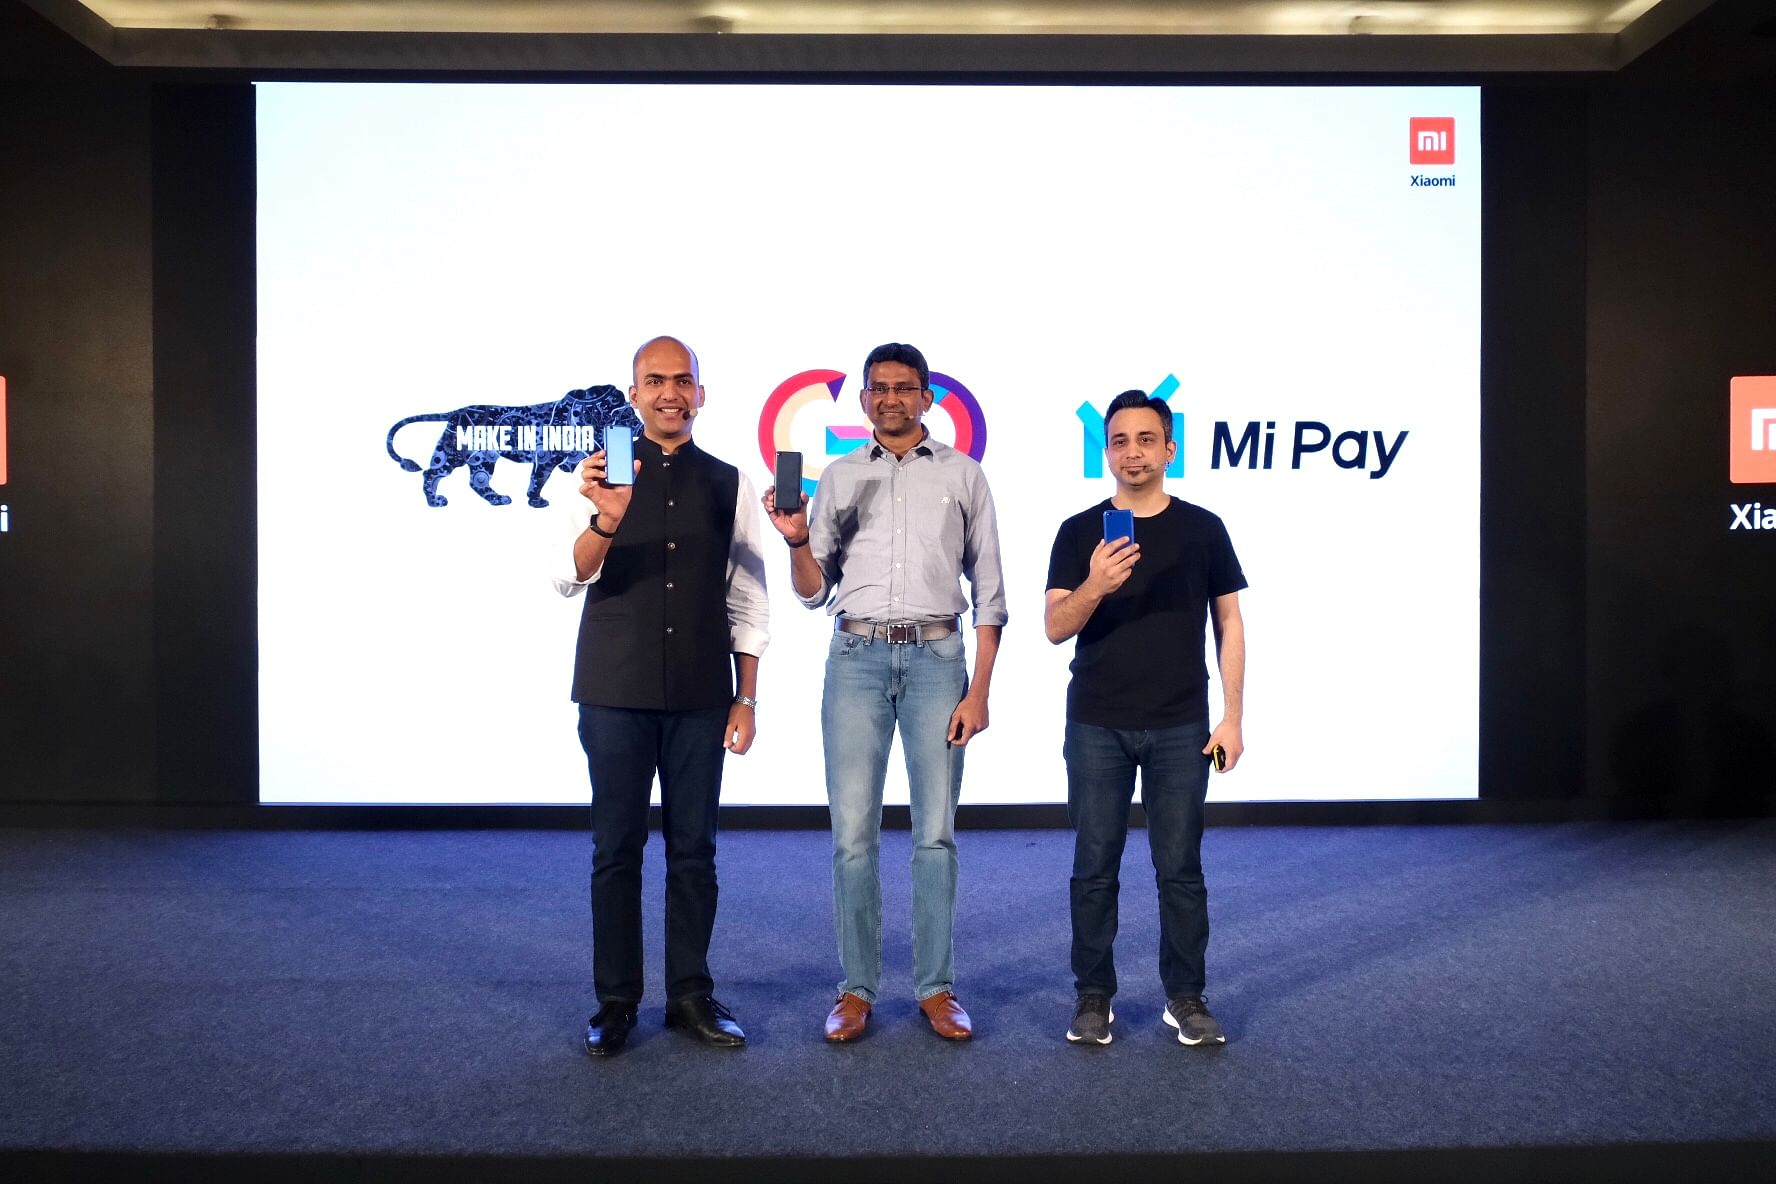 Xiaomi launches its UPI payments app, Mi Pay, in India